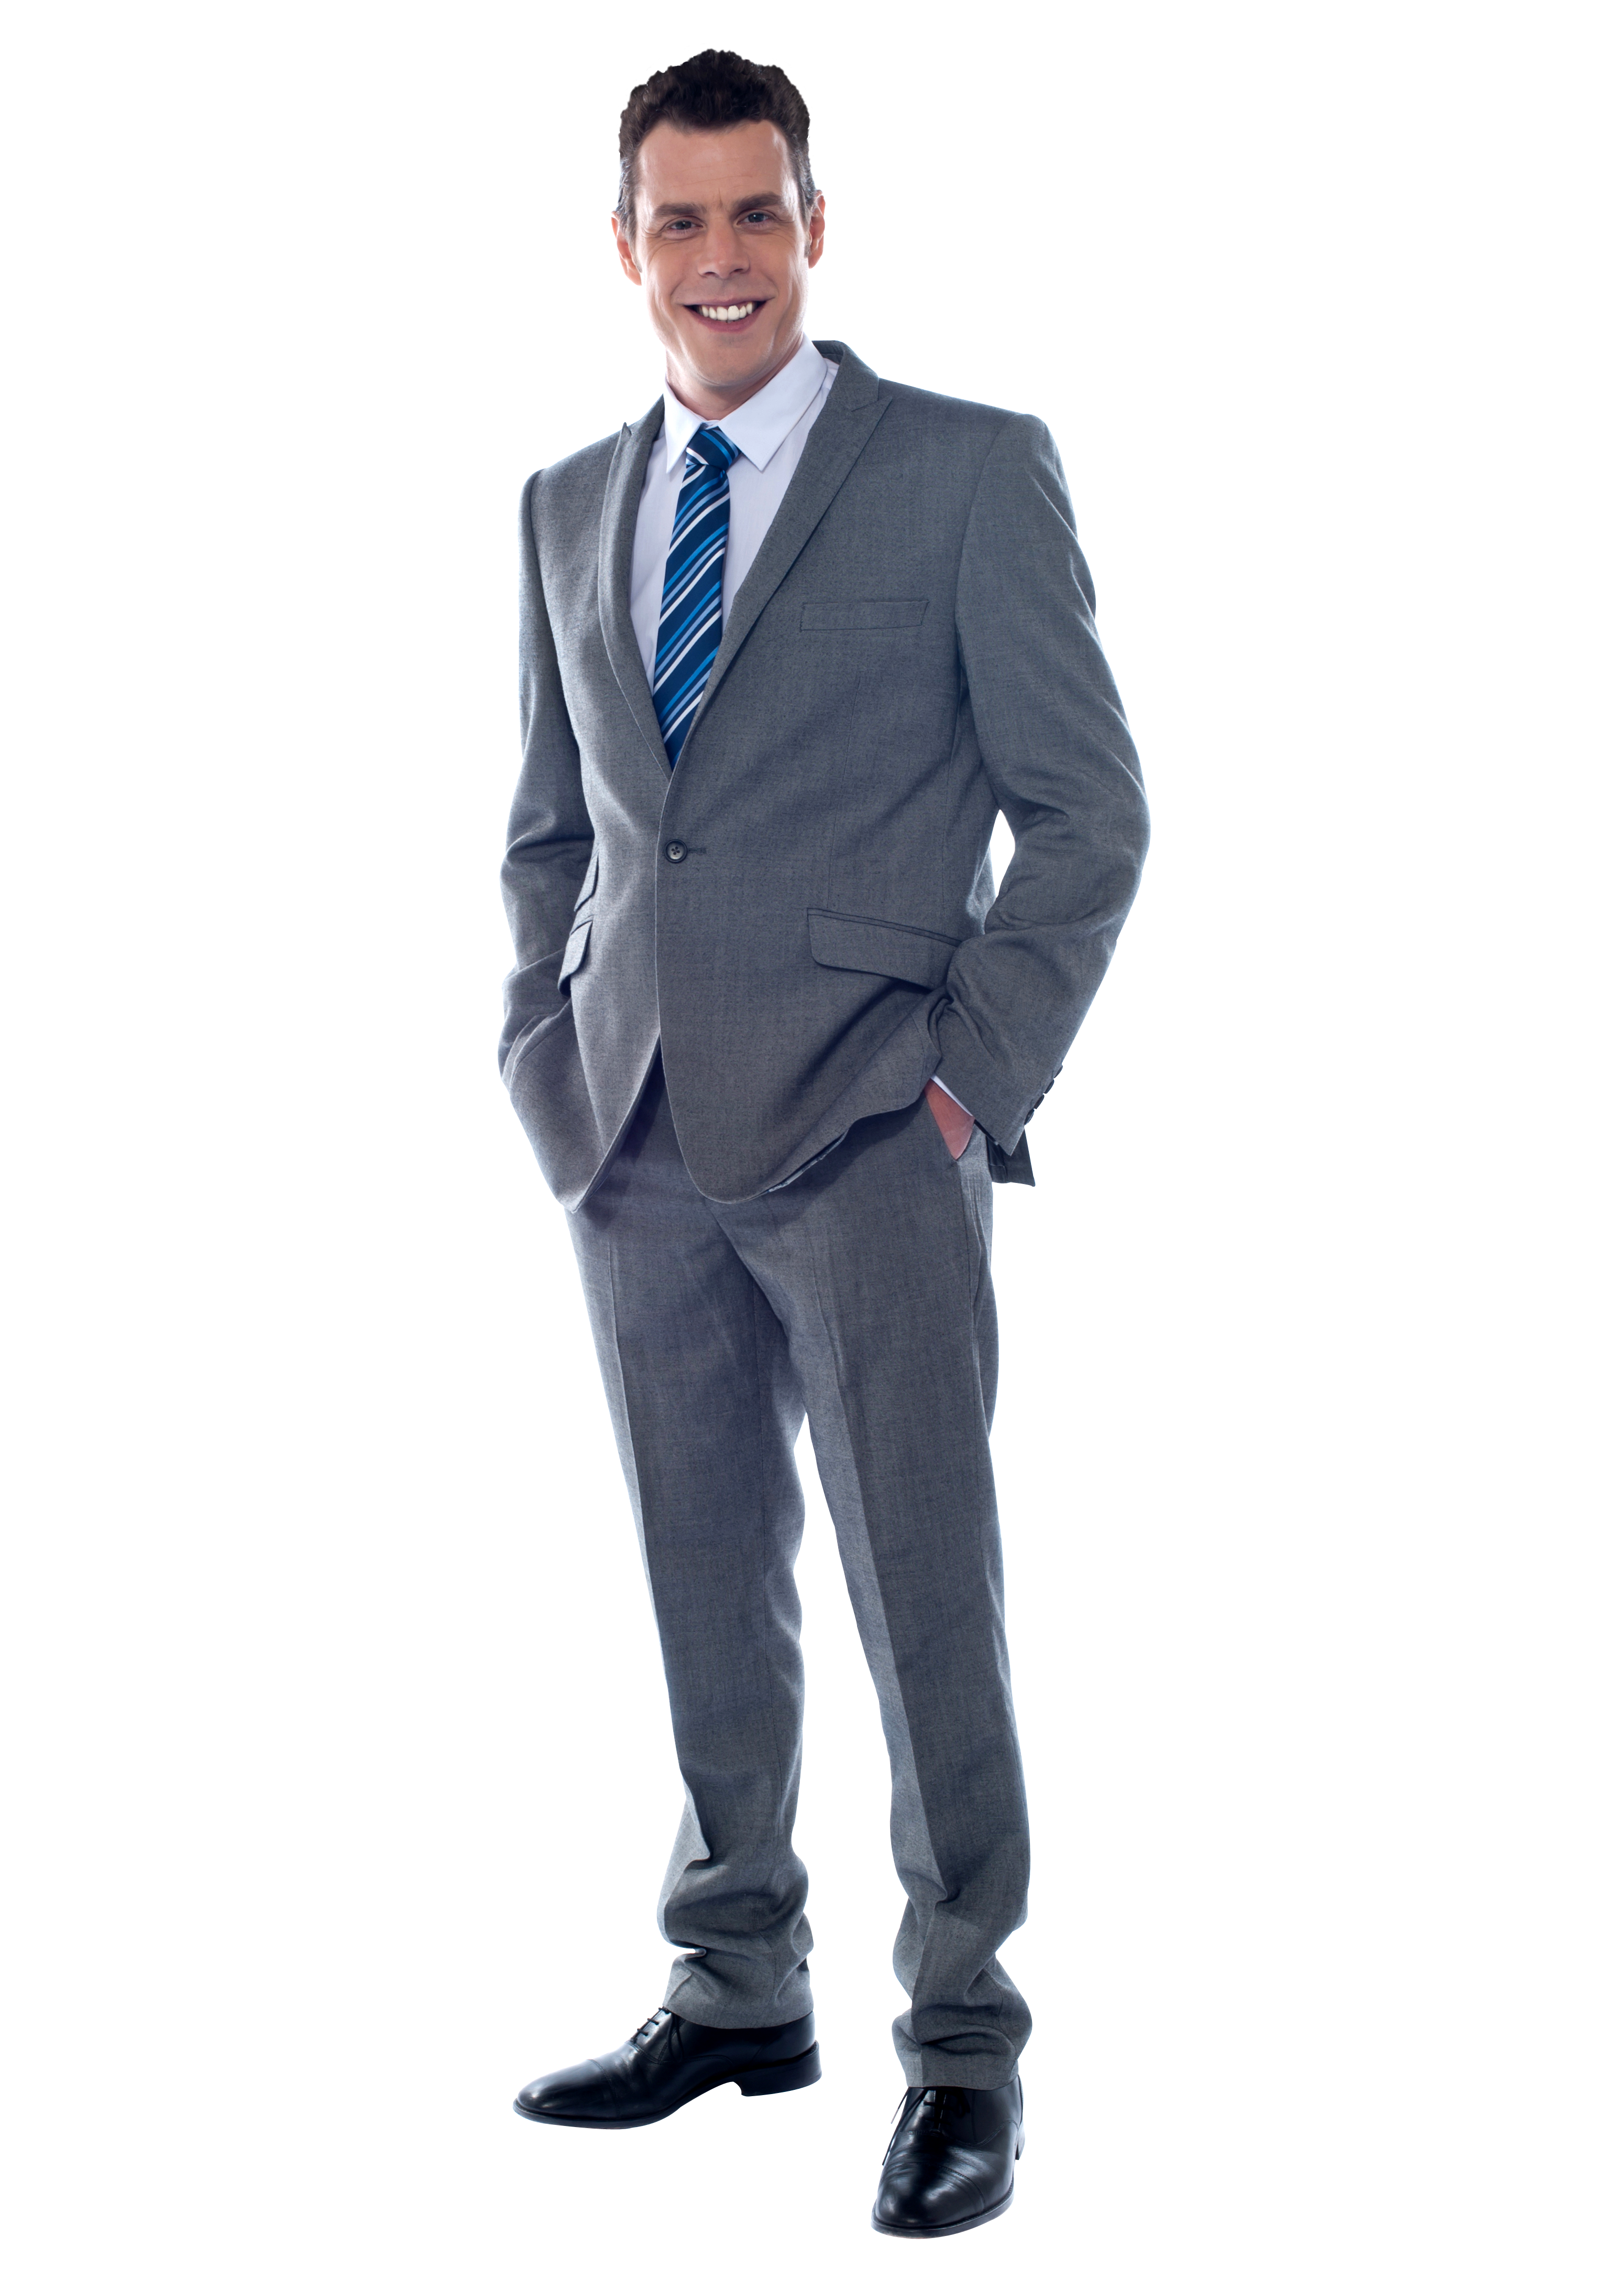 Download Men In Suit PNG Image for Free.